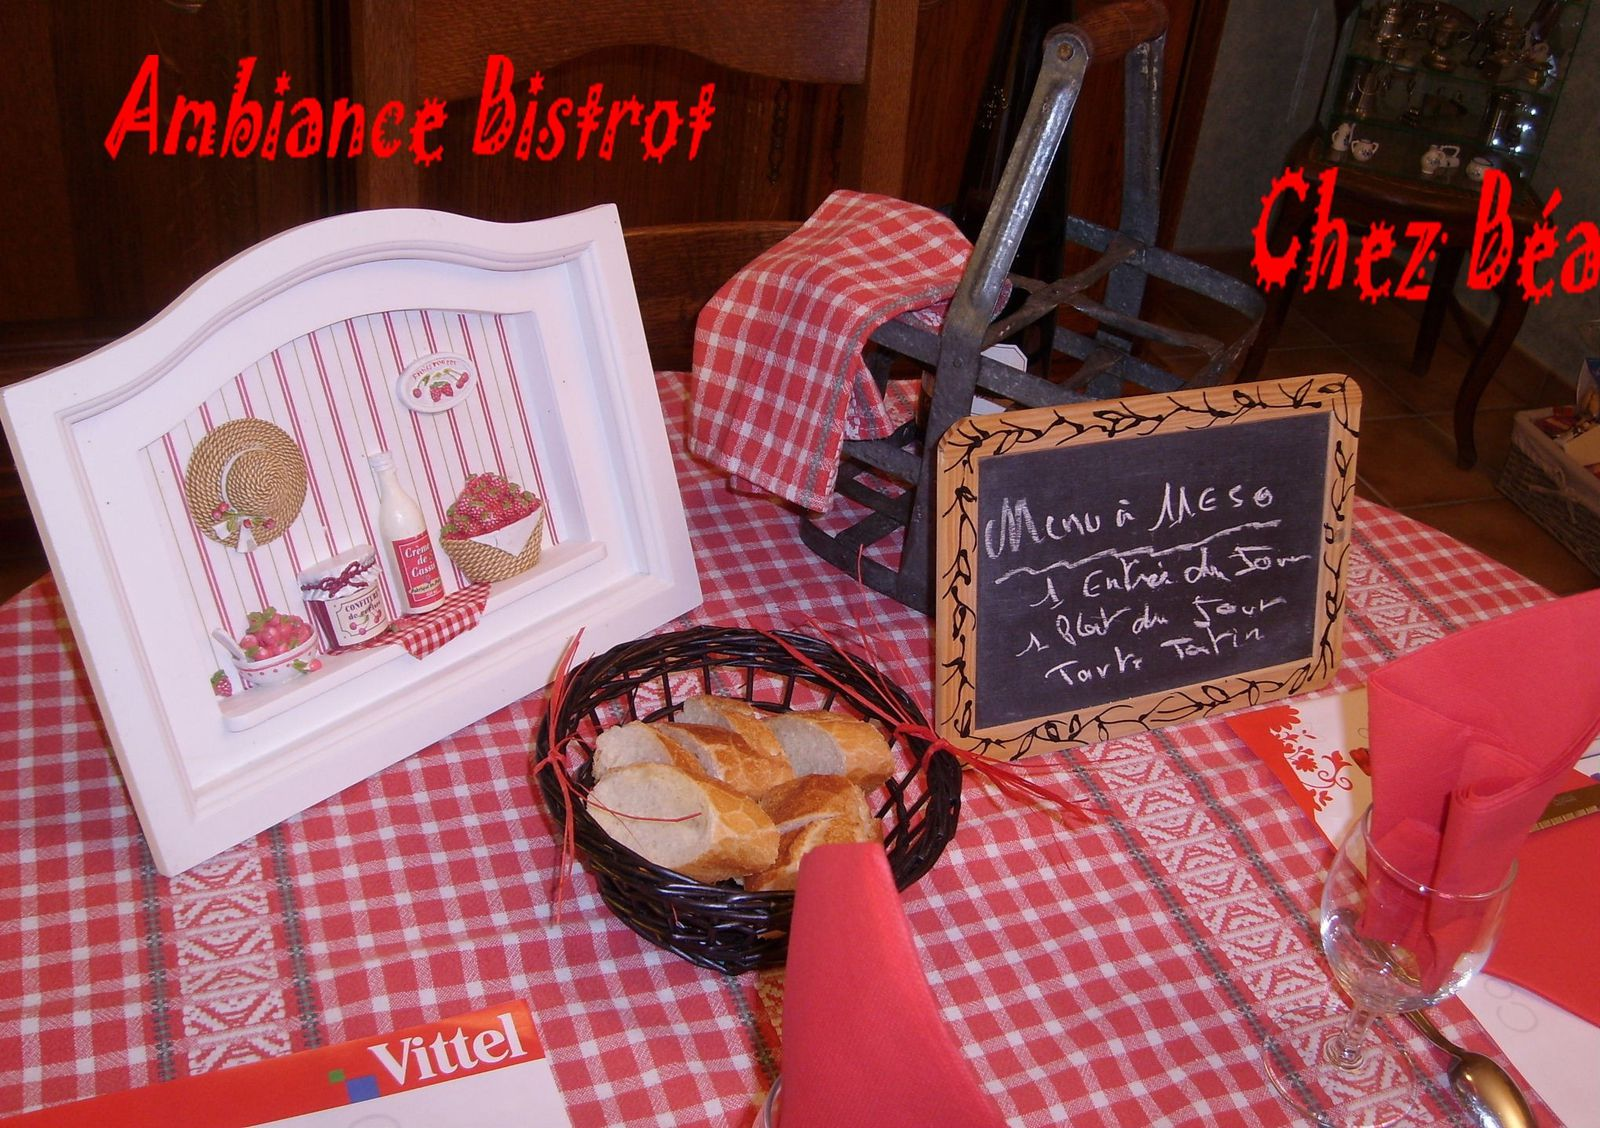 Table ambiance bistrot deco de tables plats - Ambiance bistrot ...